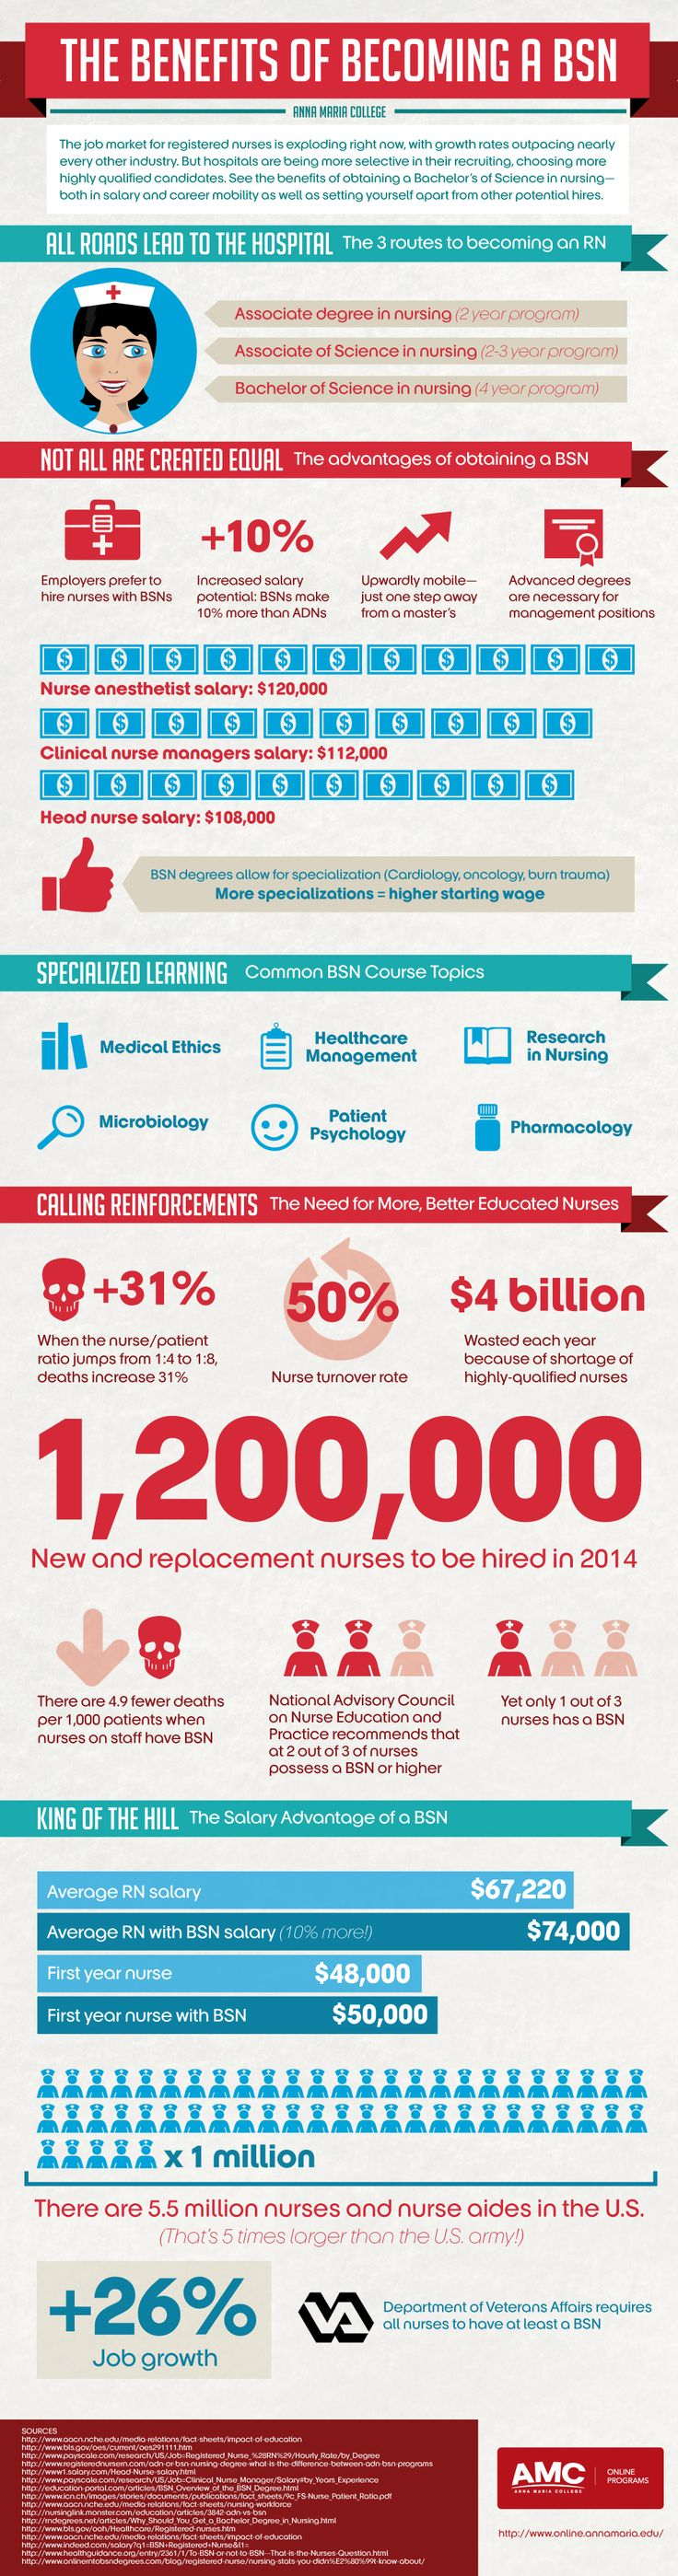 In honor of Nurses Week May 6-10: The Benefits of Becoming a BSN | Infographic | Anna Maria College Online